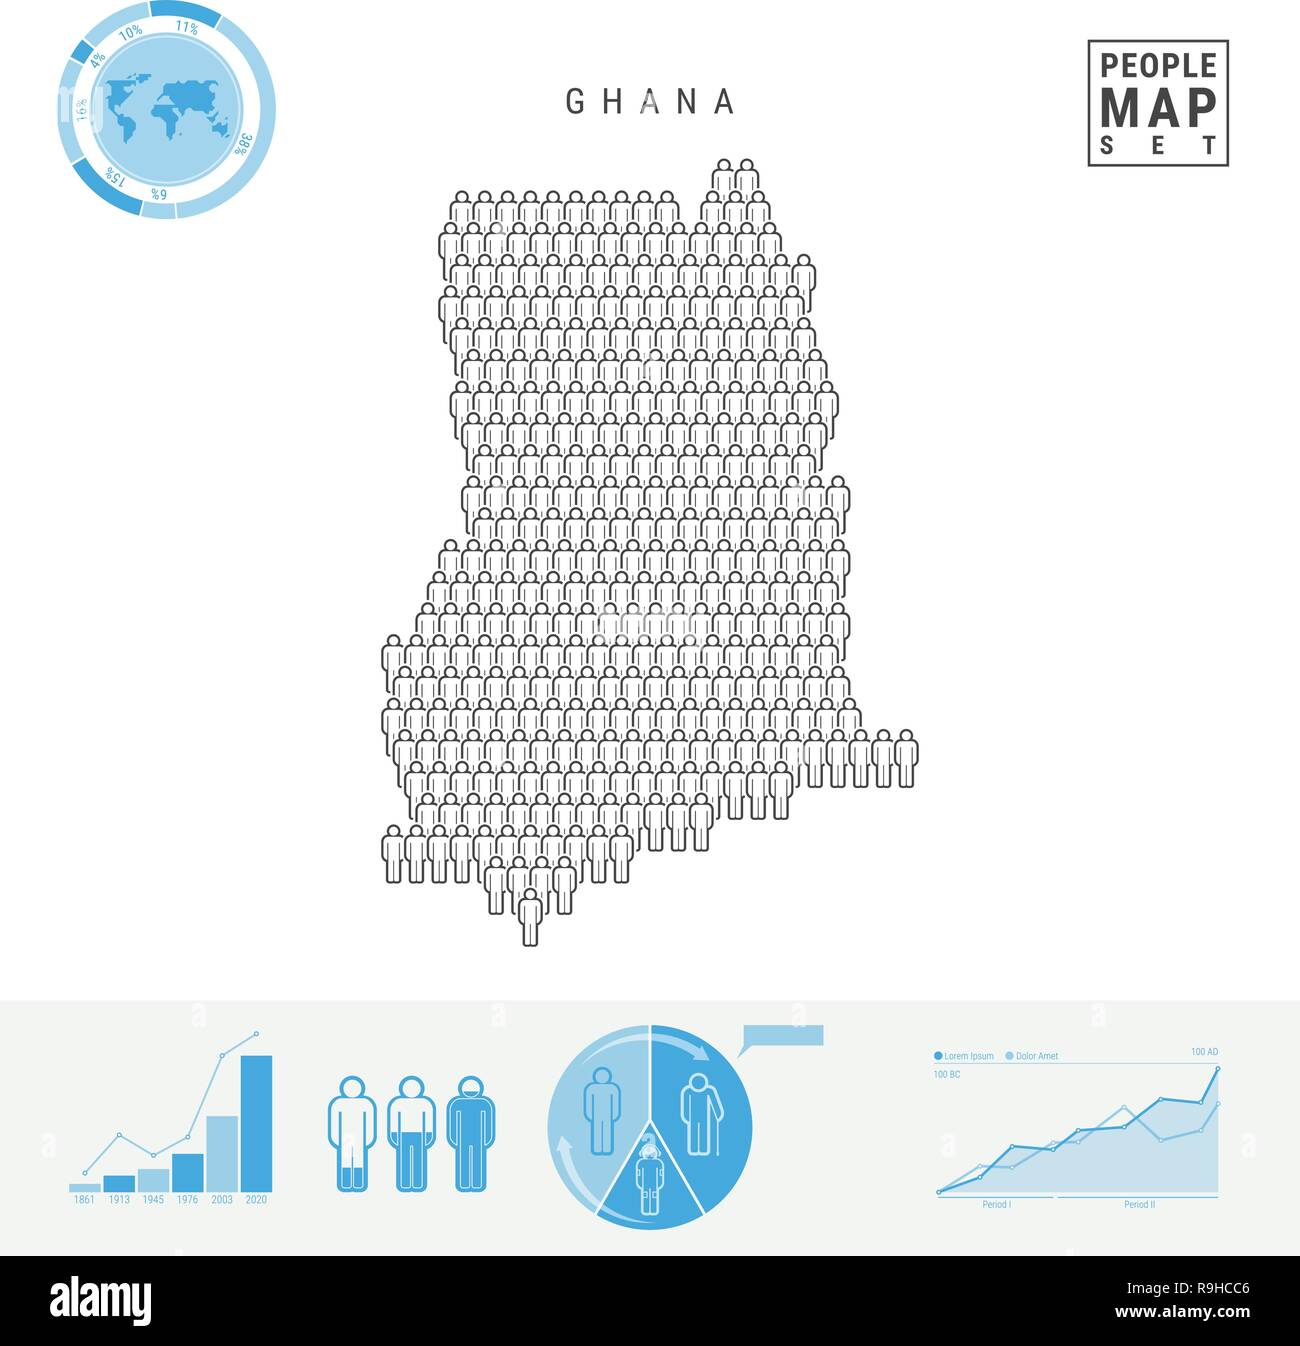 Ghana People Icon Map. People Crowd in the Shape of a Map of Ghana. Stylized Silhouette of Ghana. Population Growth and Aging Infographic Elements. Ve - Stock Vector